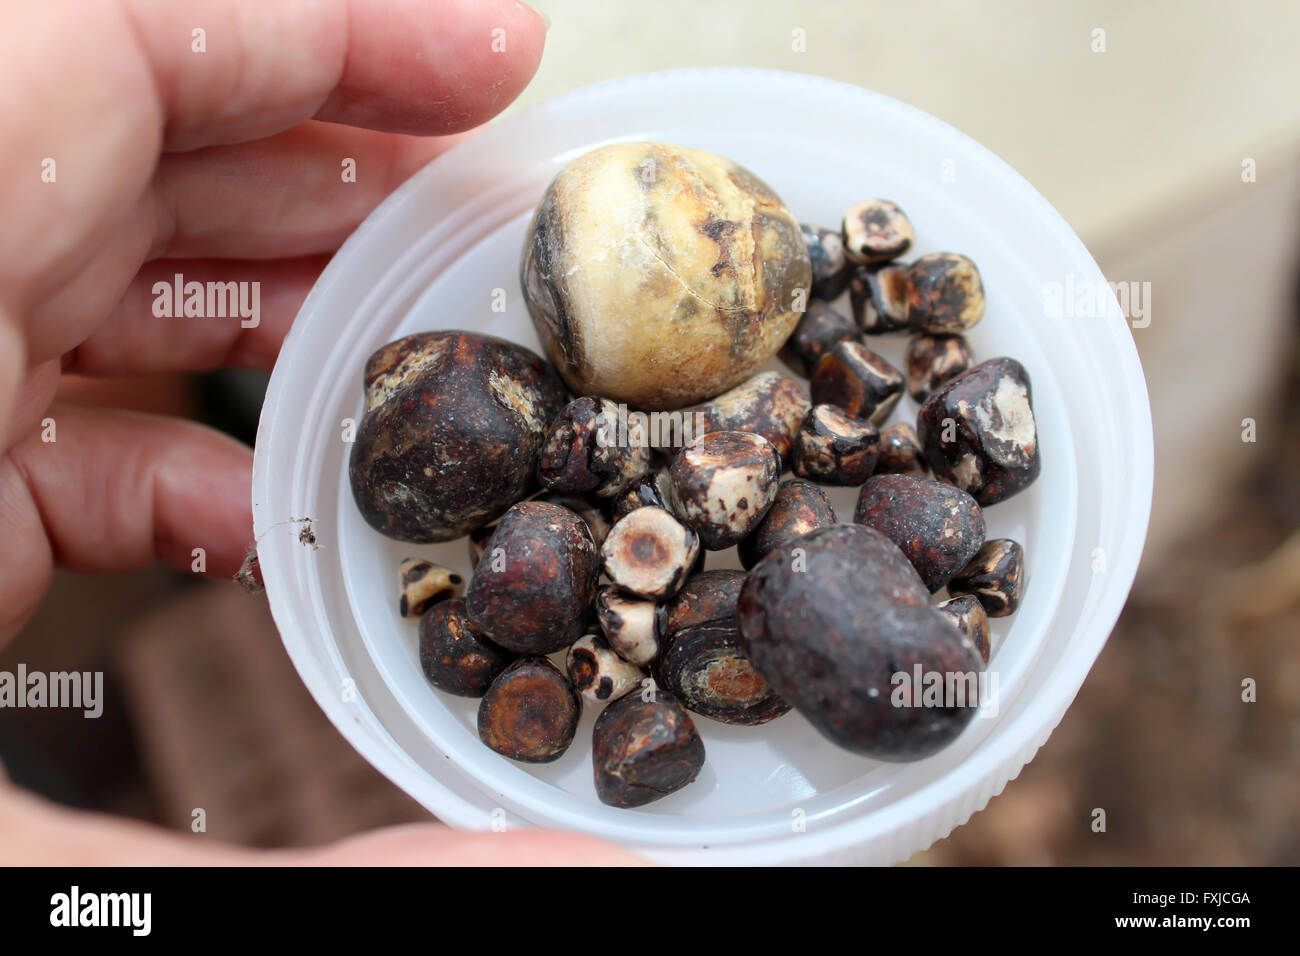 Gallstones Small Hard Crystalline Mass Formed In The Gall